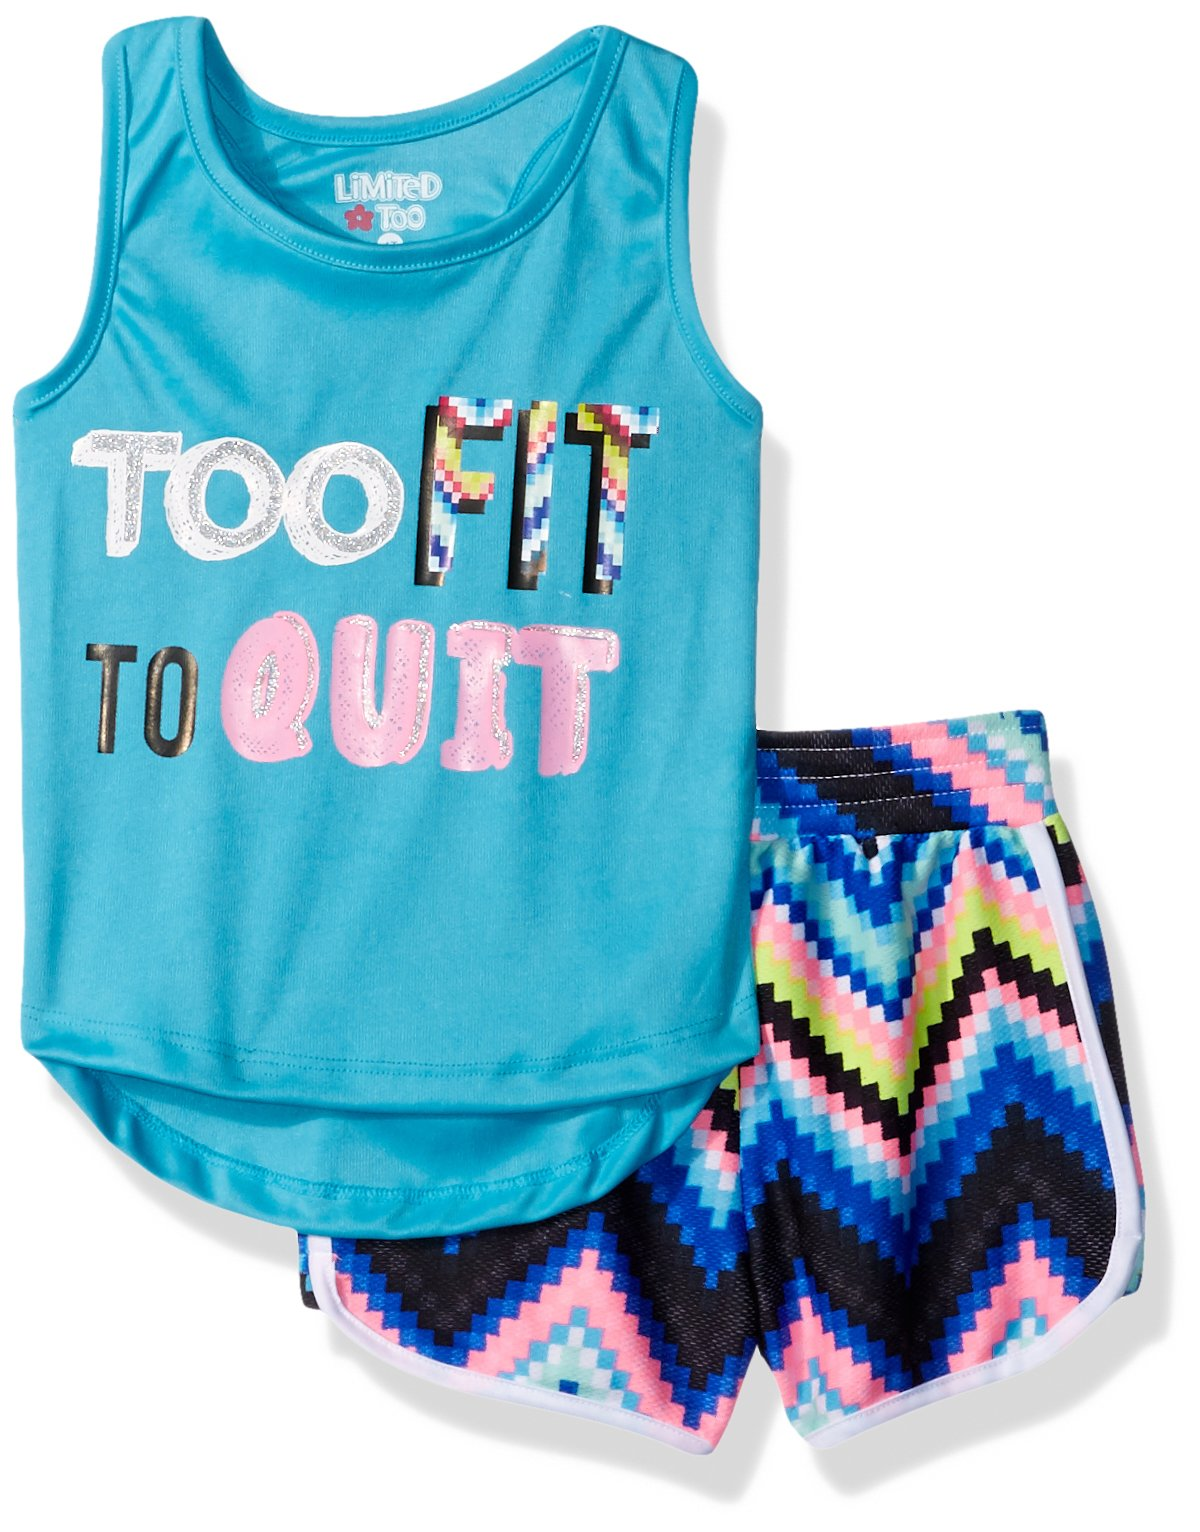 Limited Too Toddler Girls' Knit Top and Short Set (More Styles Available), Multi Print, 4T